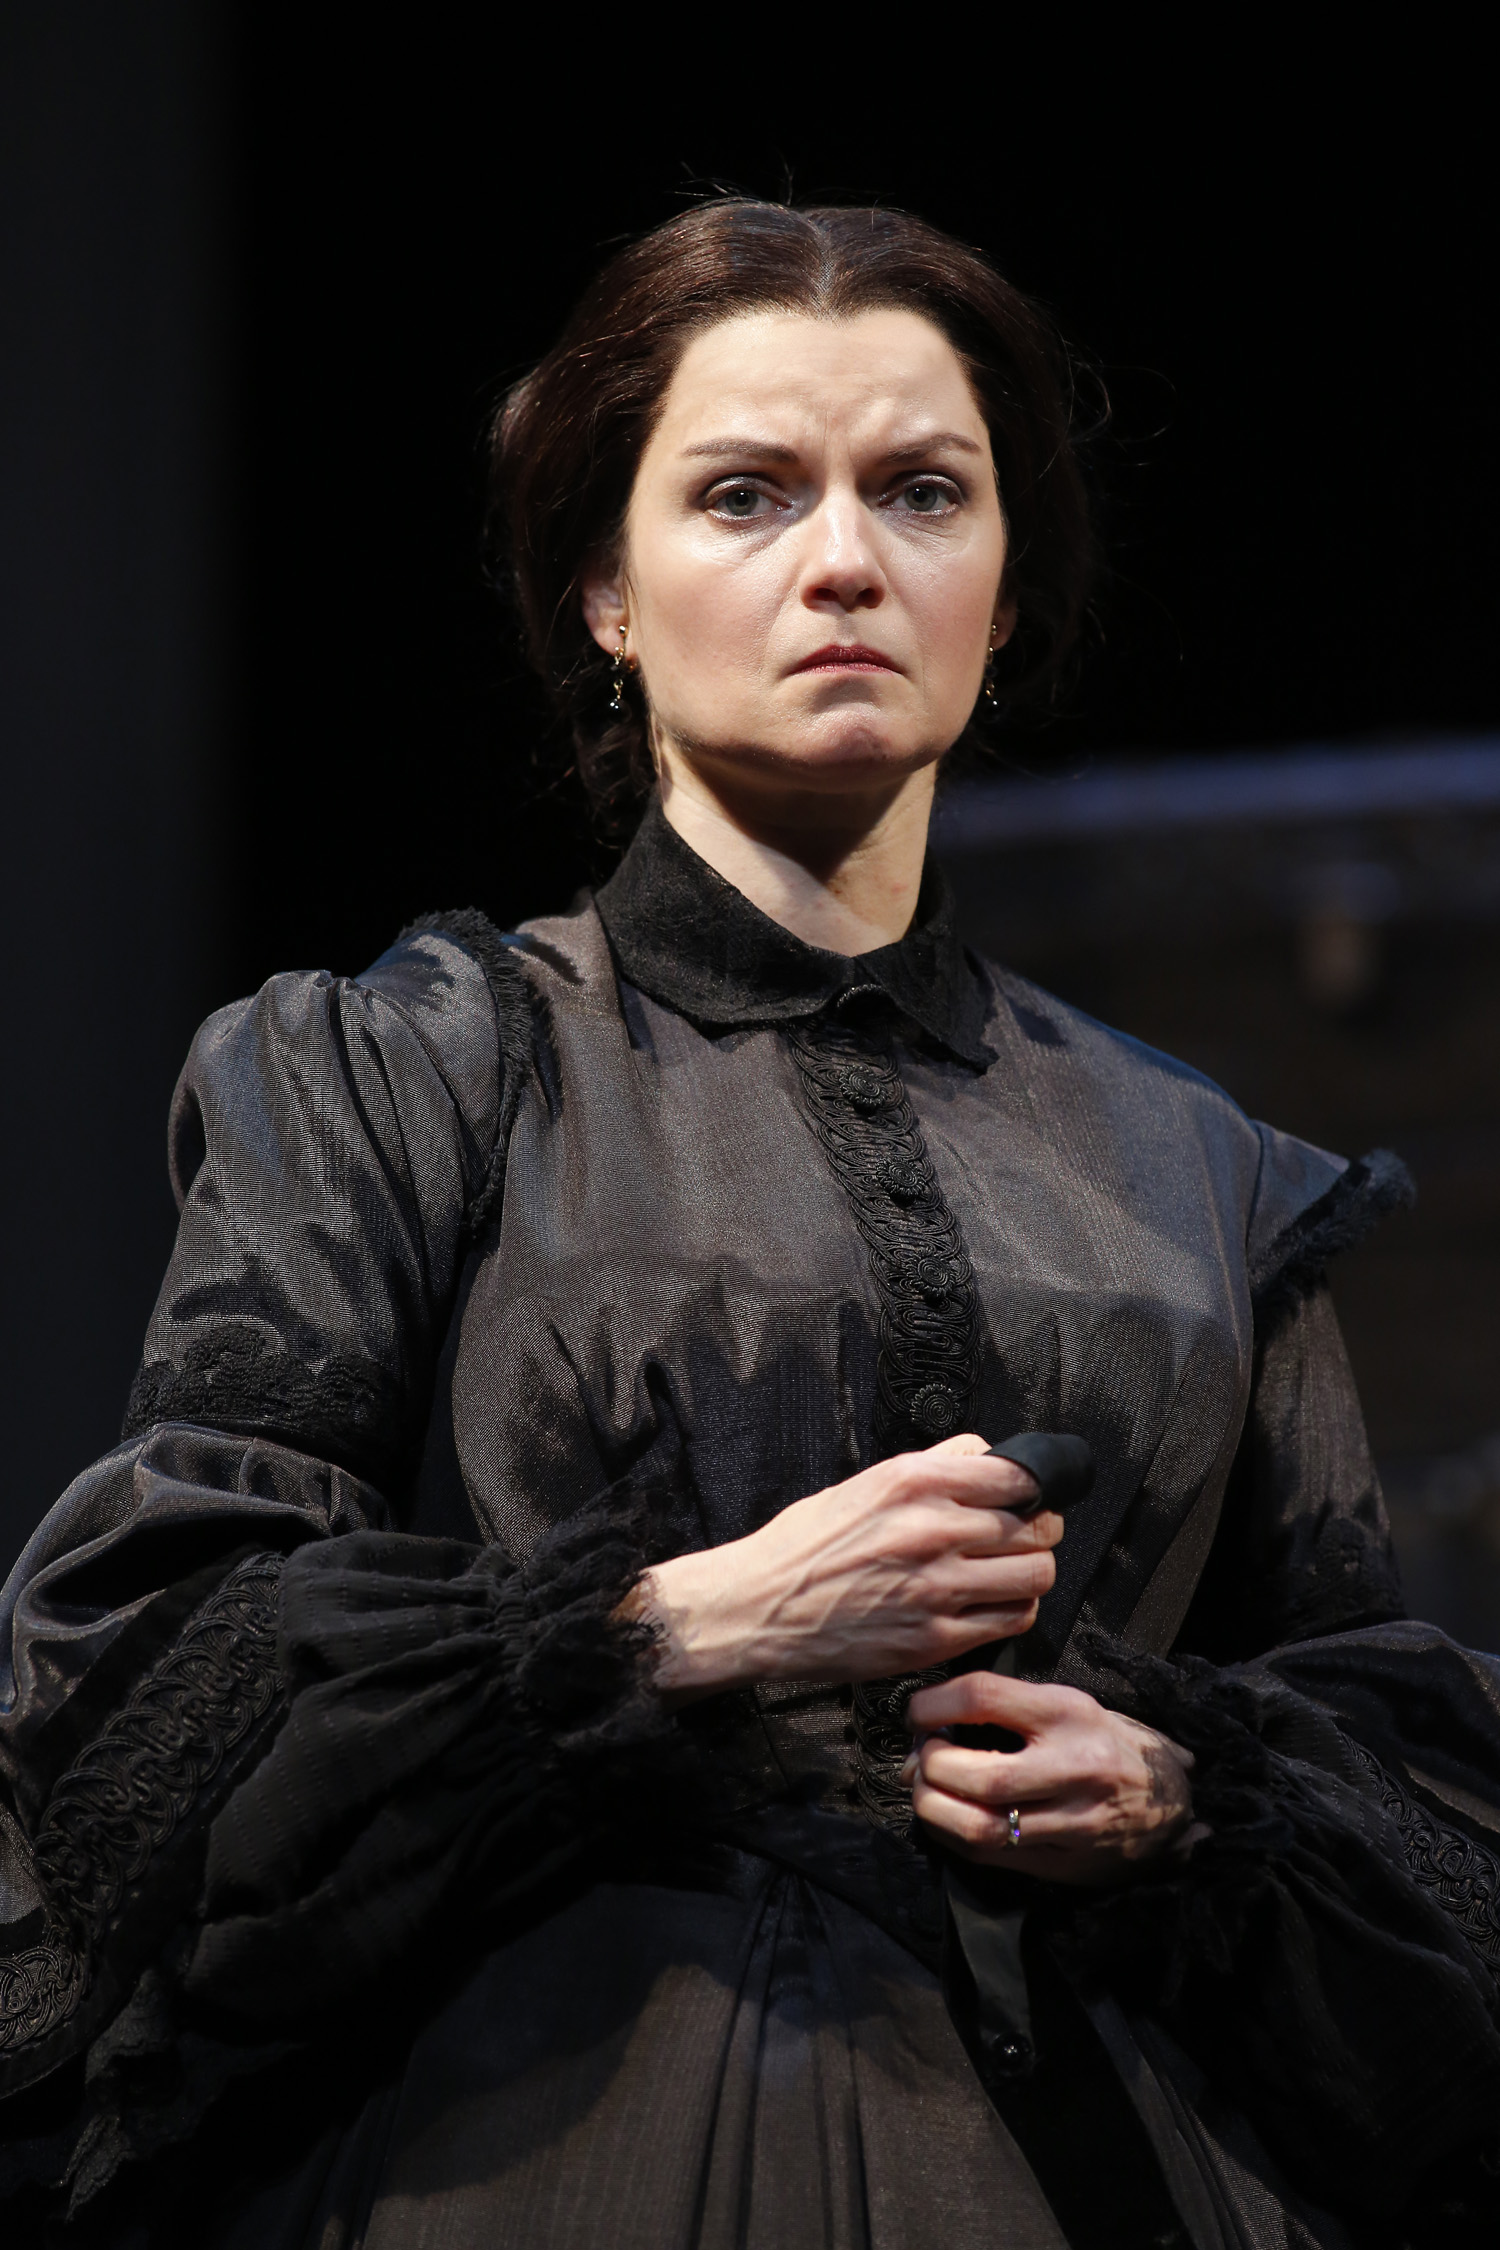 A woman dressed as Mary Lincoln wears mourning clothes and a sad expression.